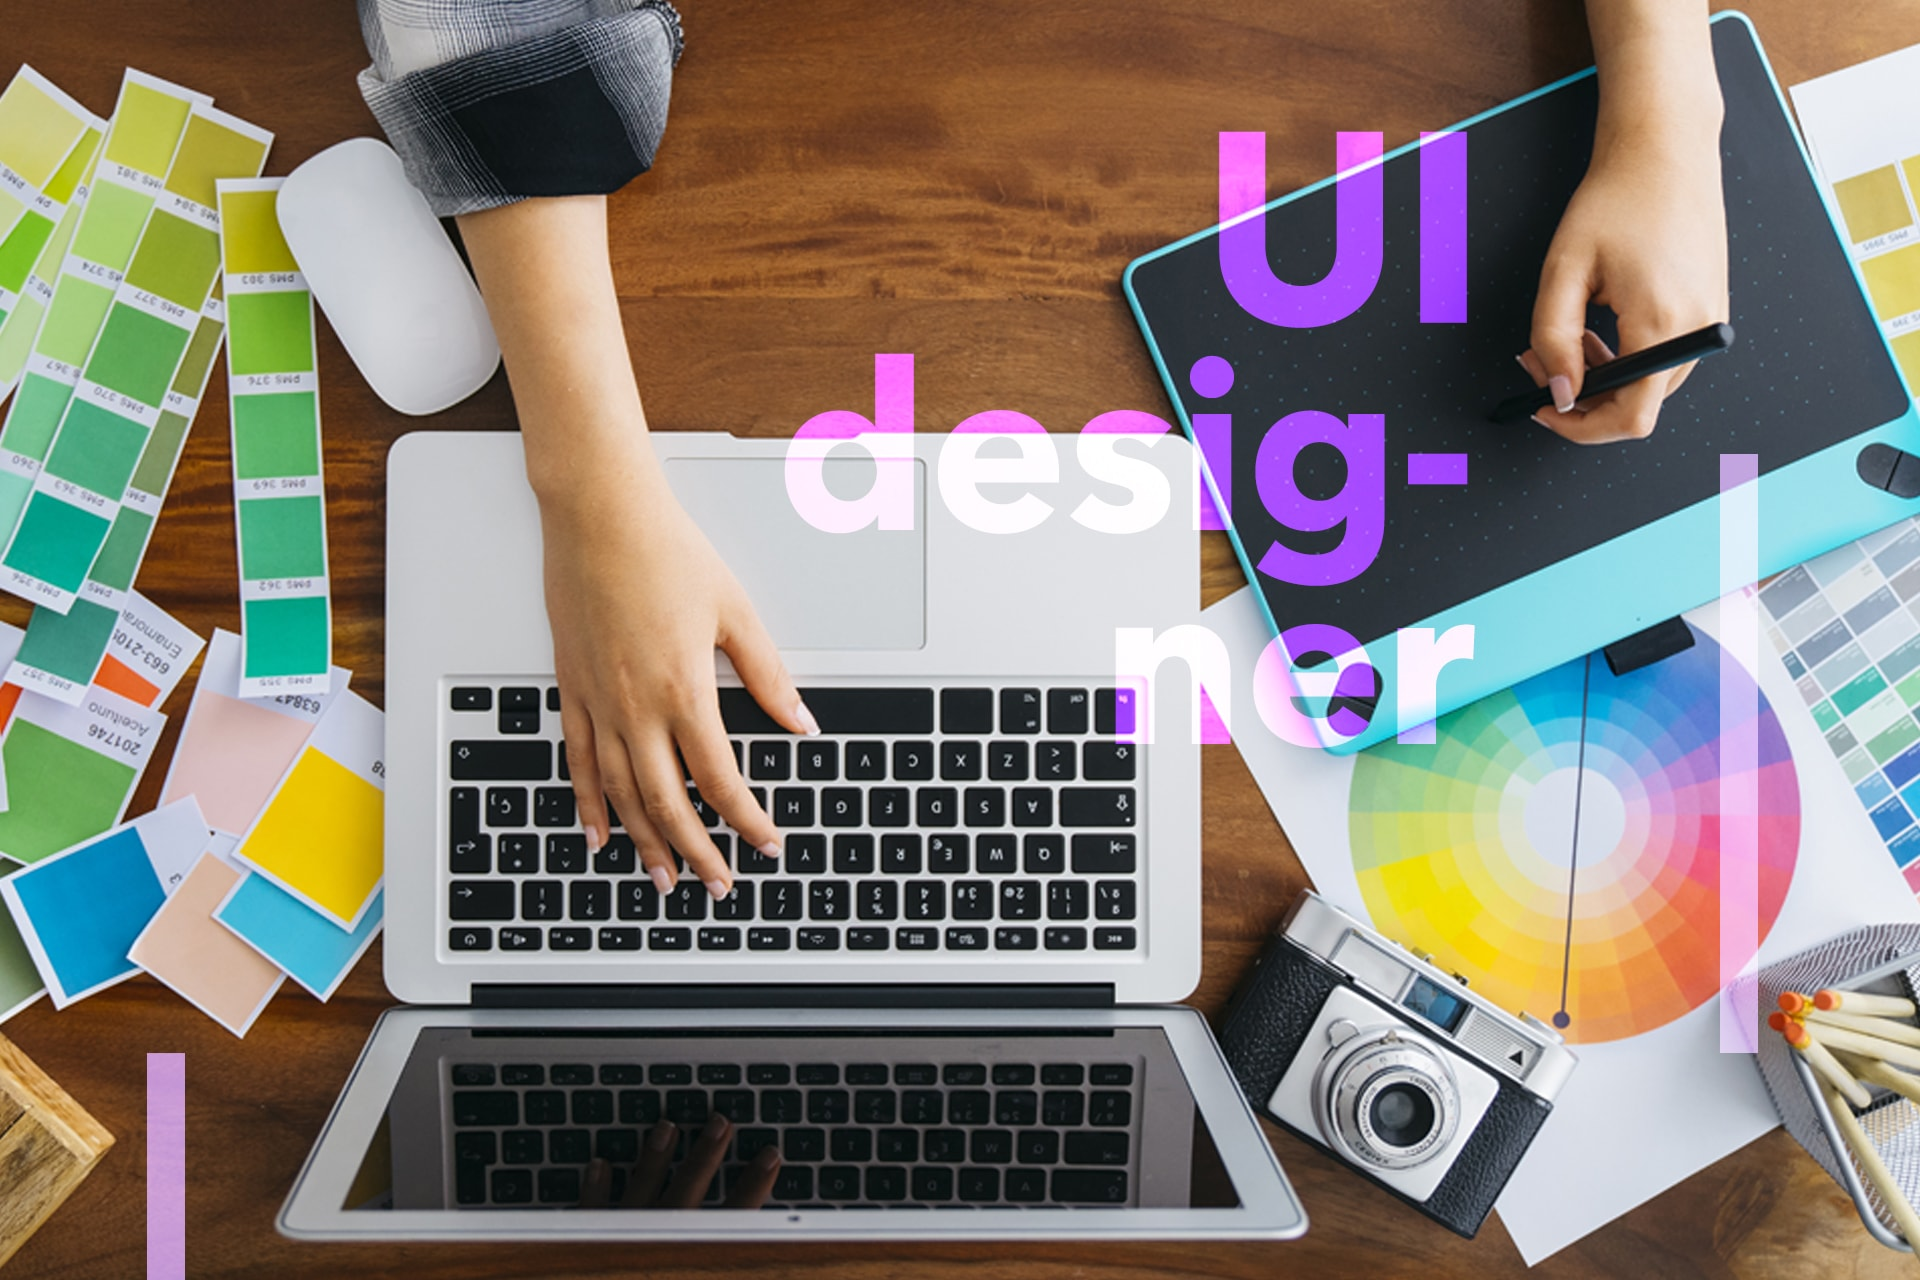 User Interface Design: cos'è e che cosa fa?